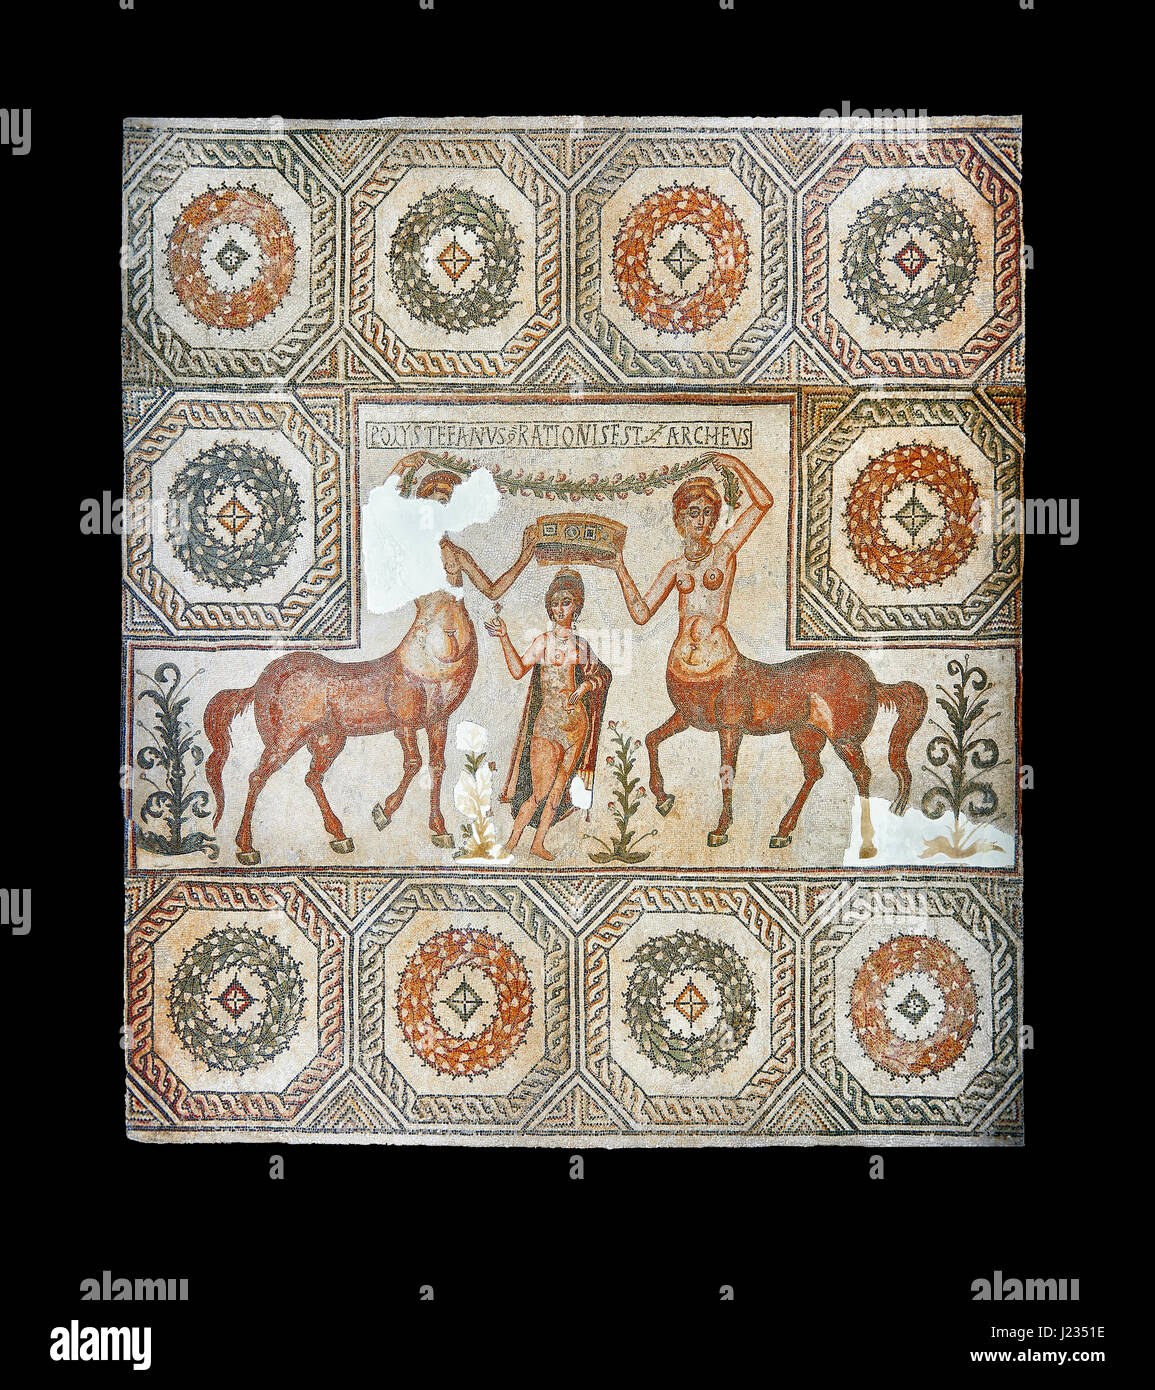 4th century Roman mosaic panel of the Goddess Venus from Ulules (Elles). Venus or Aphrodite accompanied by 2 female - Stock Image